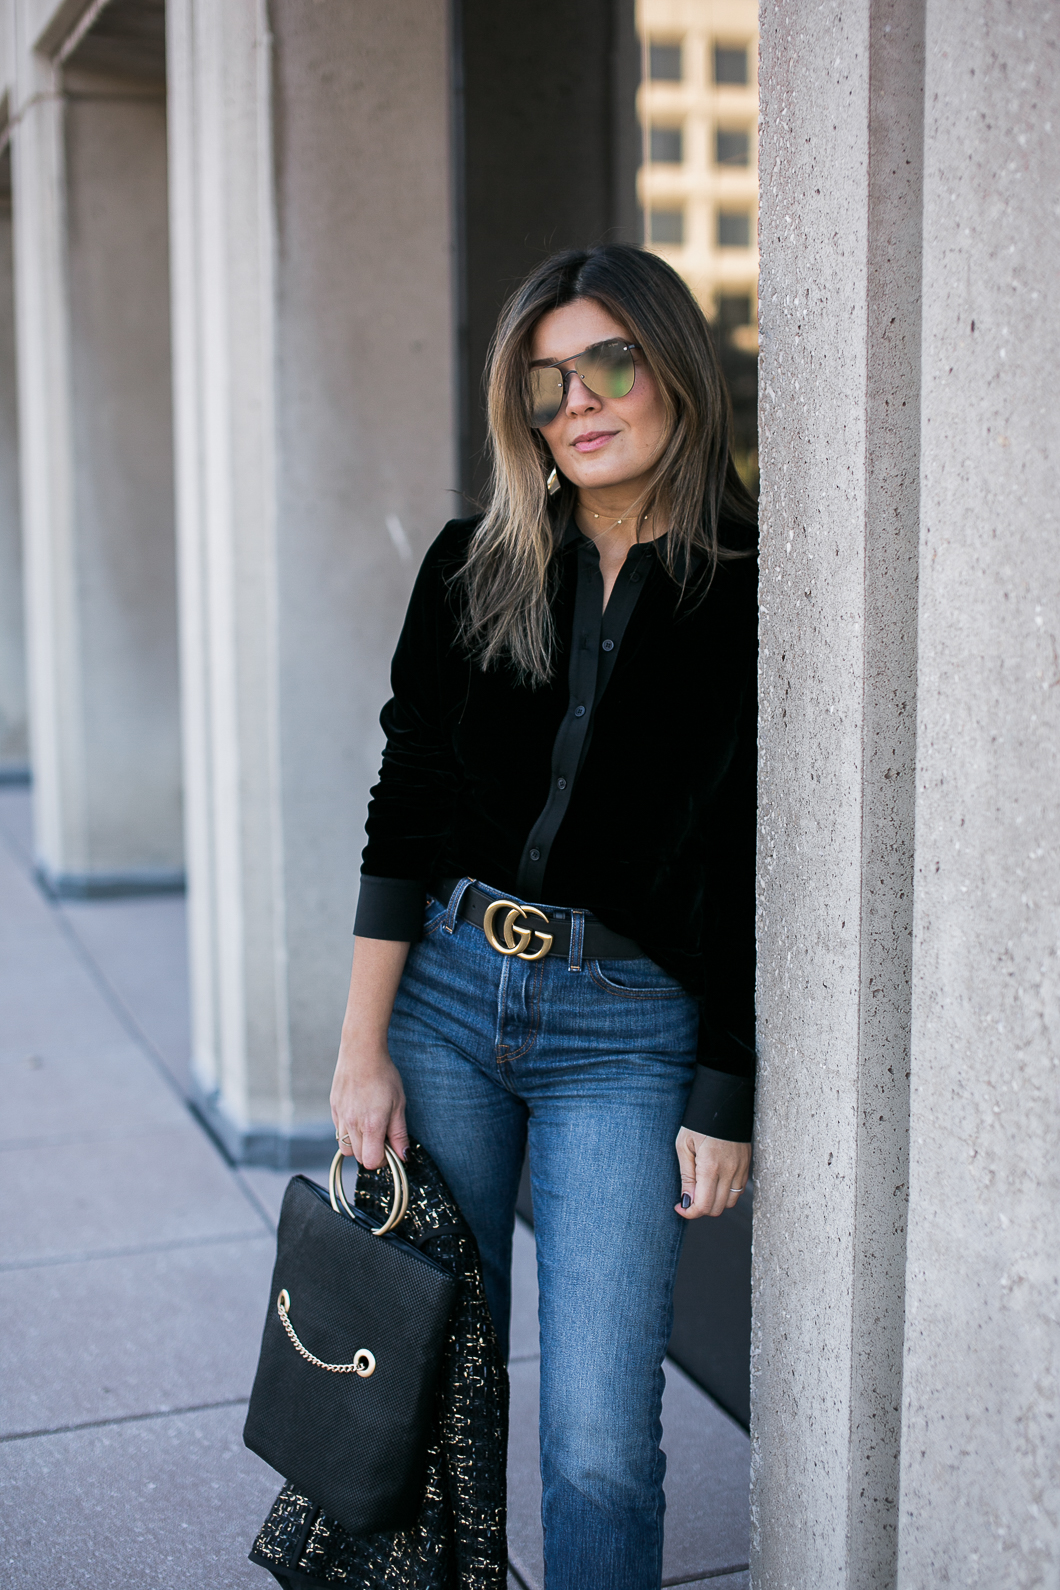 Blogger Sara Azani of Style MBA wearing a black Gucci leather belt with double G buckle, 5 Disc Choker Necklace, Whiting & Davis Fold-Over Tote, LEVI'S Wedgie Skinny Jean, Lafayette 148 New York tweed jacket, and Vince portia point toe pump as part of her black and gold look in front of a stone building in Washington, DC.